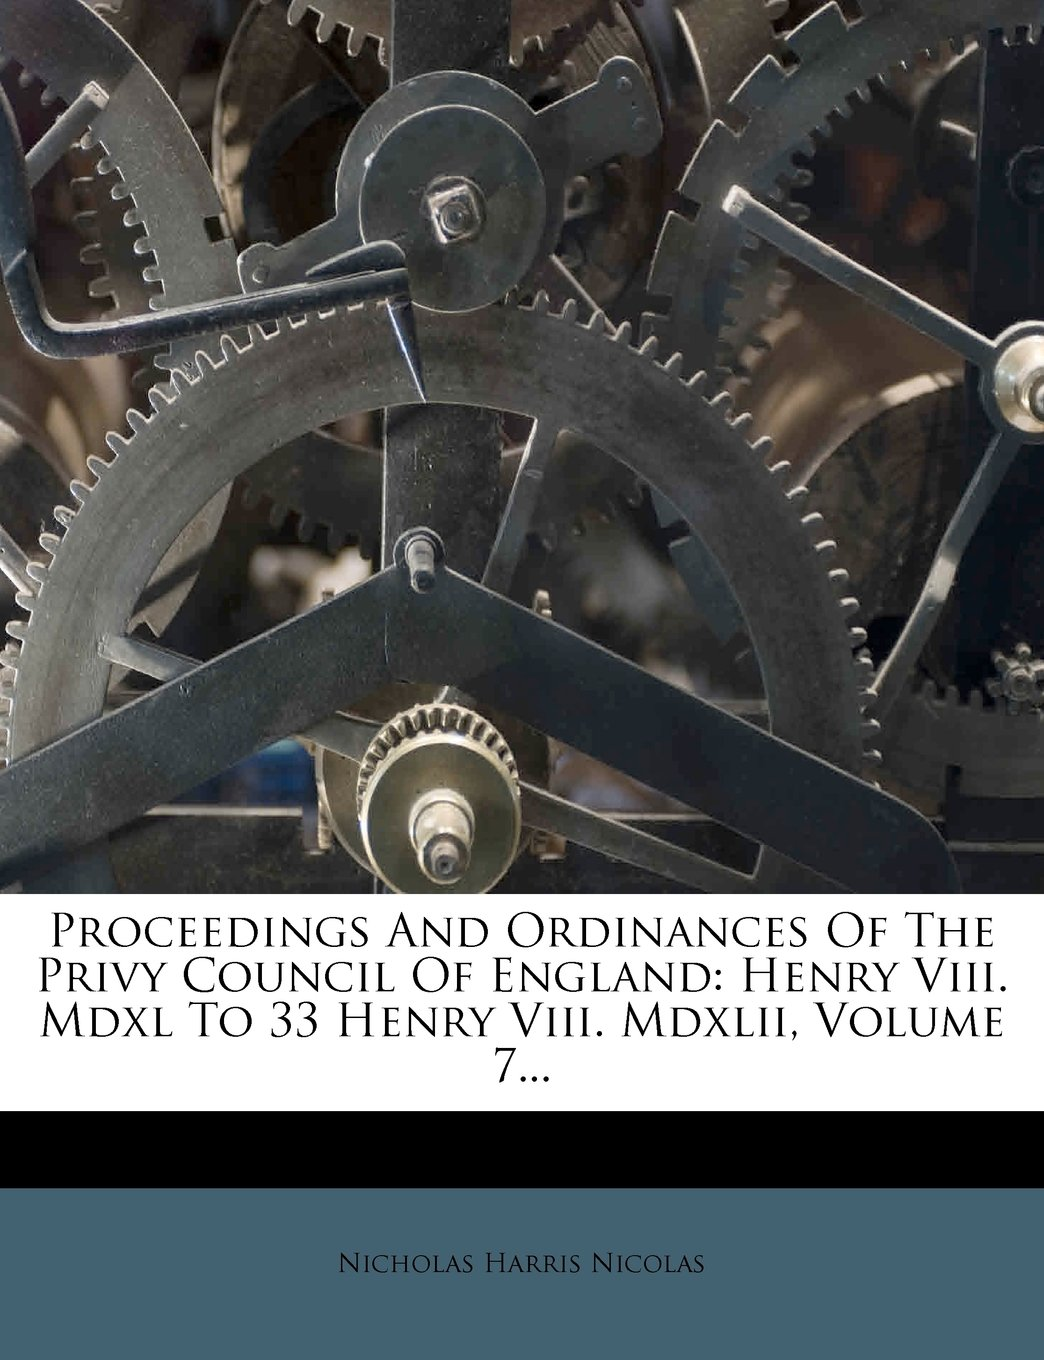 Download Proceedings And Ordinances Of The Privy Council Of England: Henry Viii. Mdxl To 33 Henry Viii. Mdxlii, Volume 7... ebook